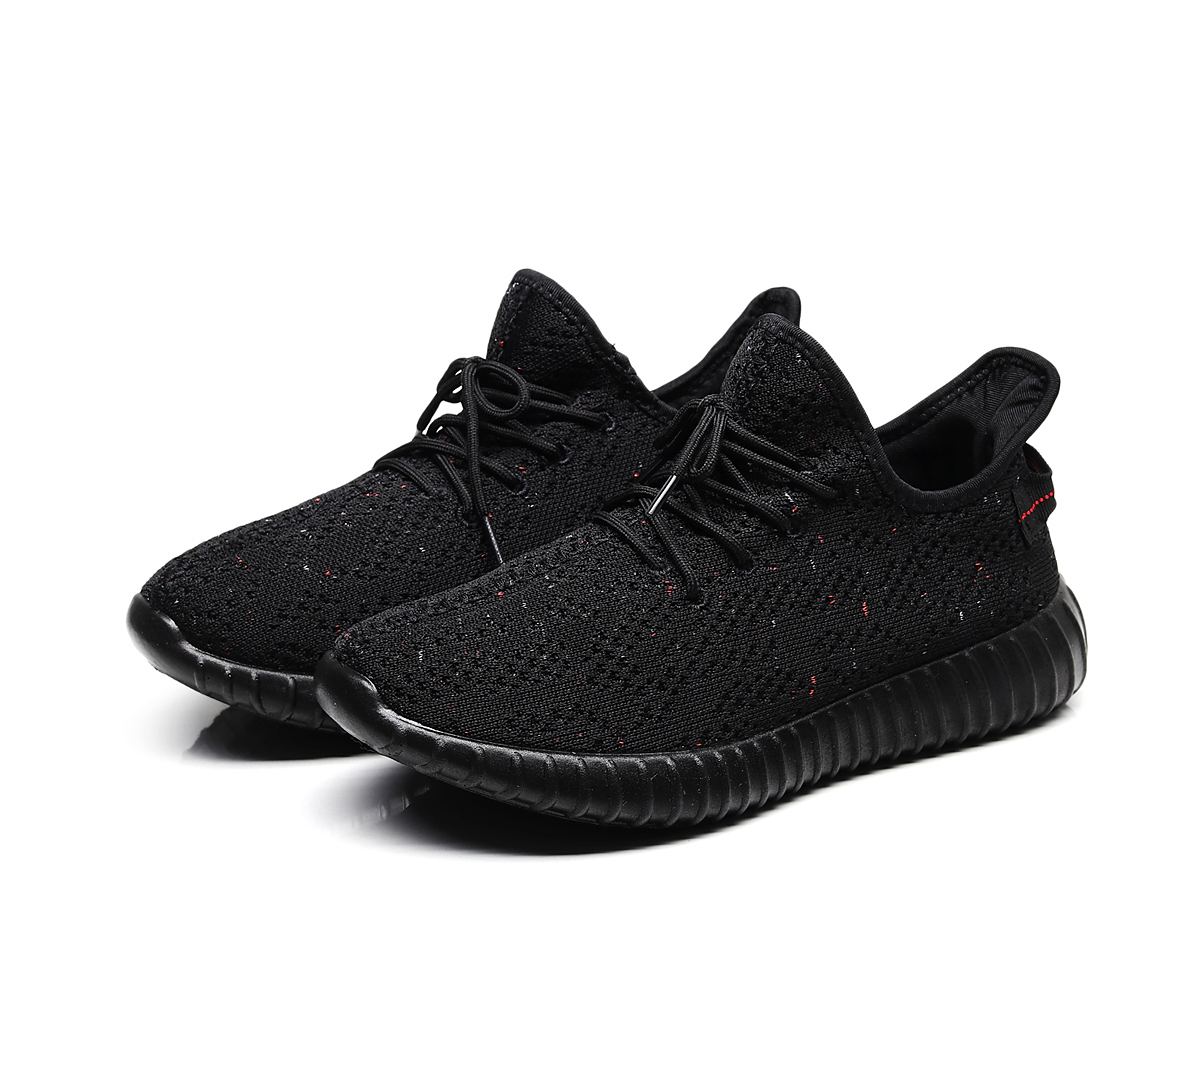 Hommes Unisexe Espadrilles Chaussures Couples New Vente Sneakers sxdCthQr